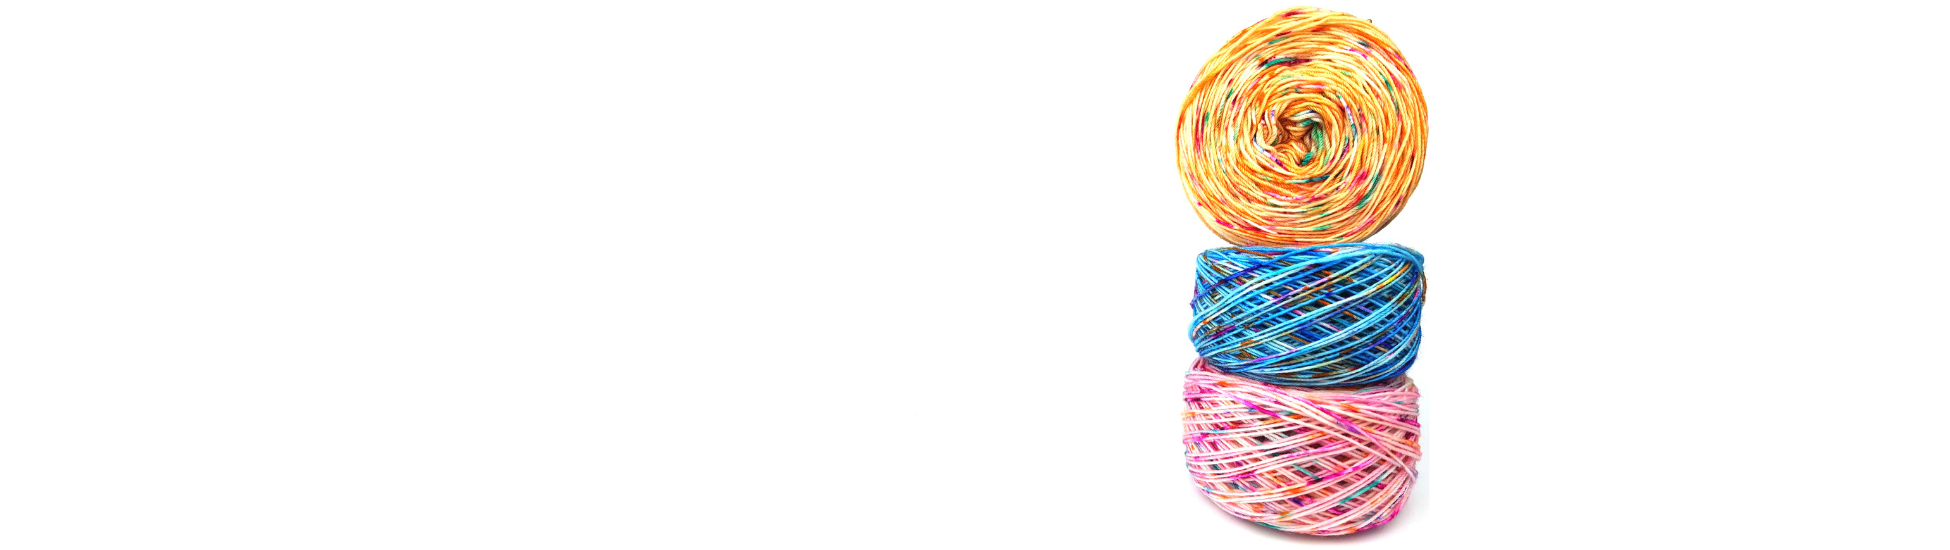 Welcome to Fiber Lily Hand Dyed Yarn Australia speckled cake ball of wool for knitting and crochet